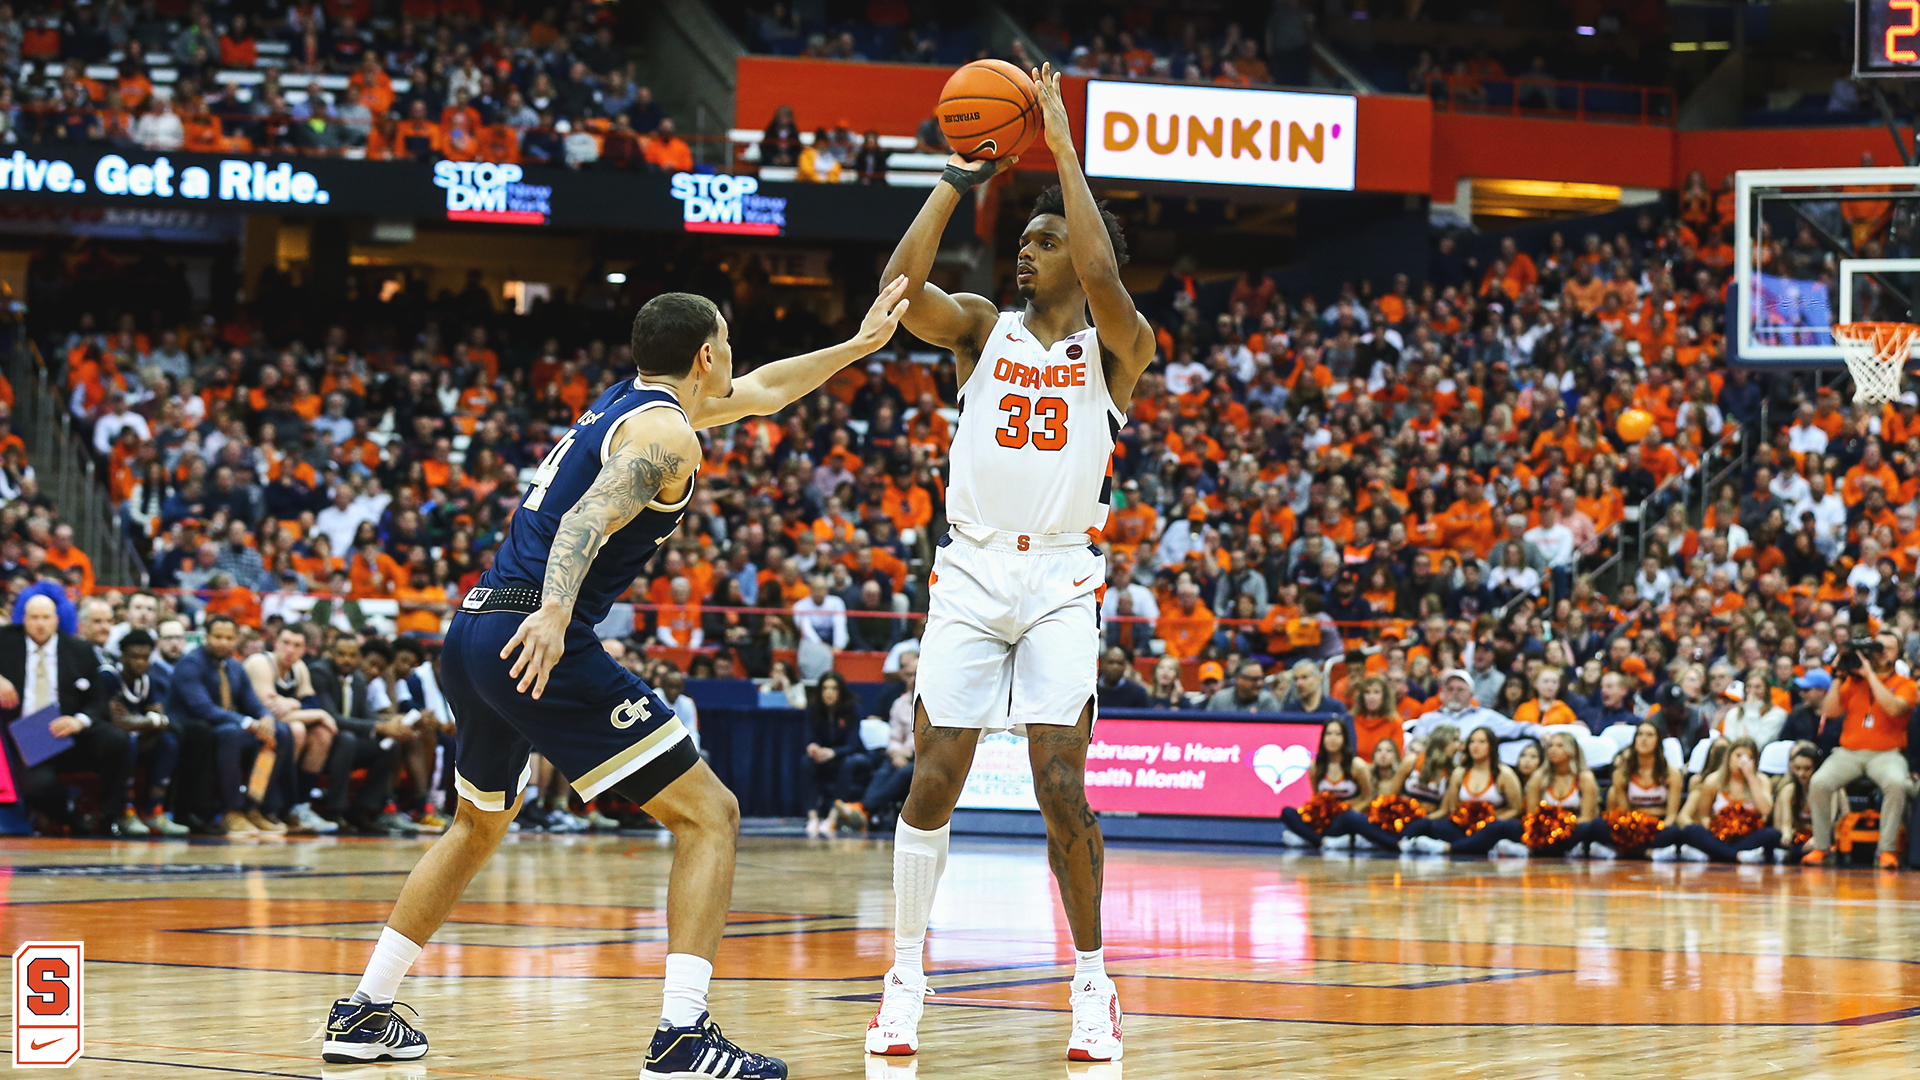 ORANGE GAME DAY: Syracuse takes on Georgia Tech at the Carrier Dome tonight (preview & info)